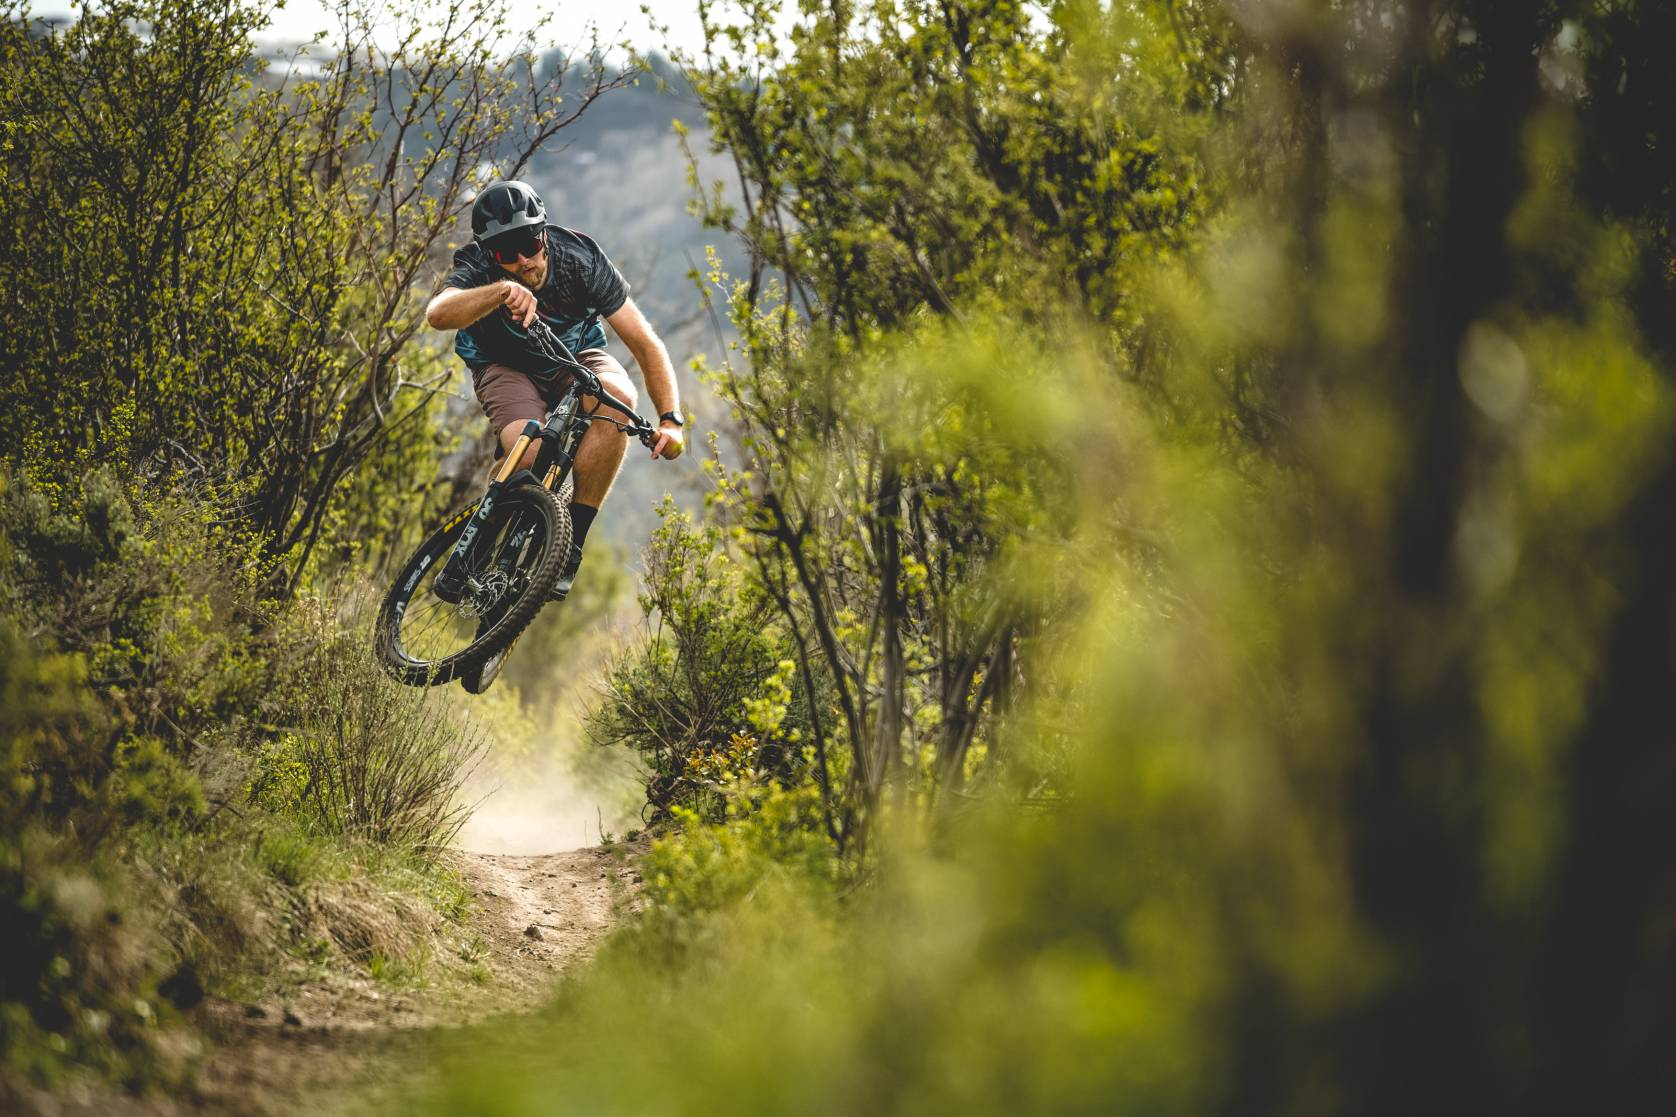 Guy Getting Some Air on a Mountain Bike